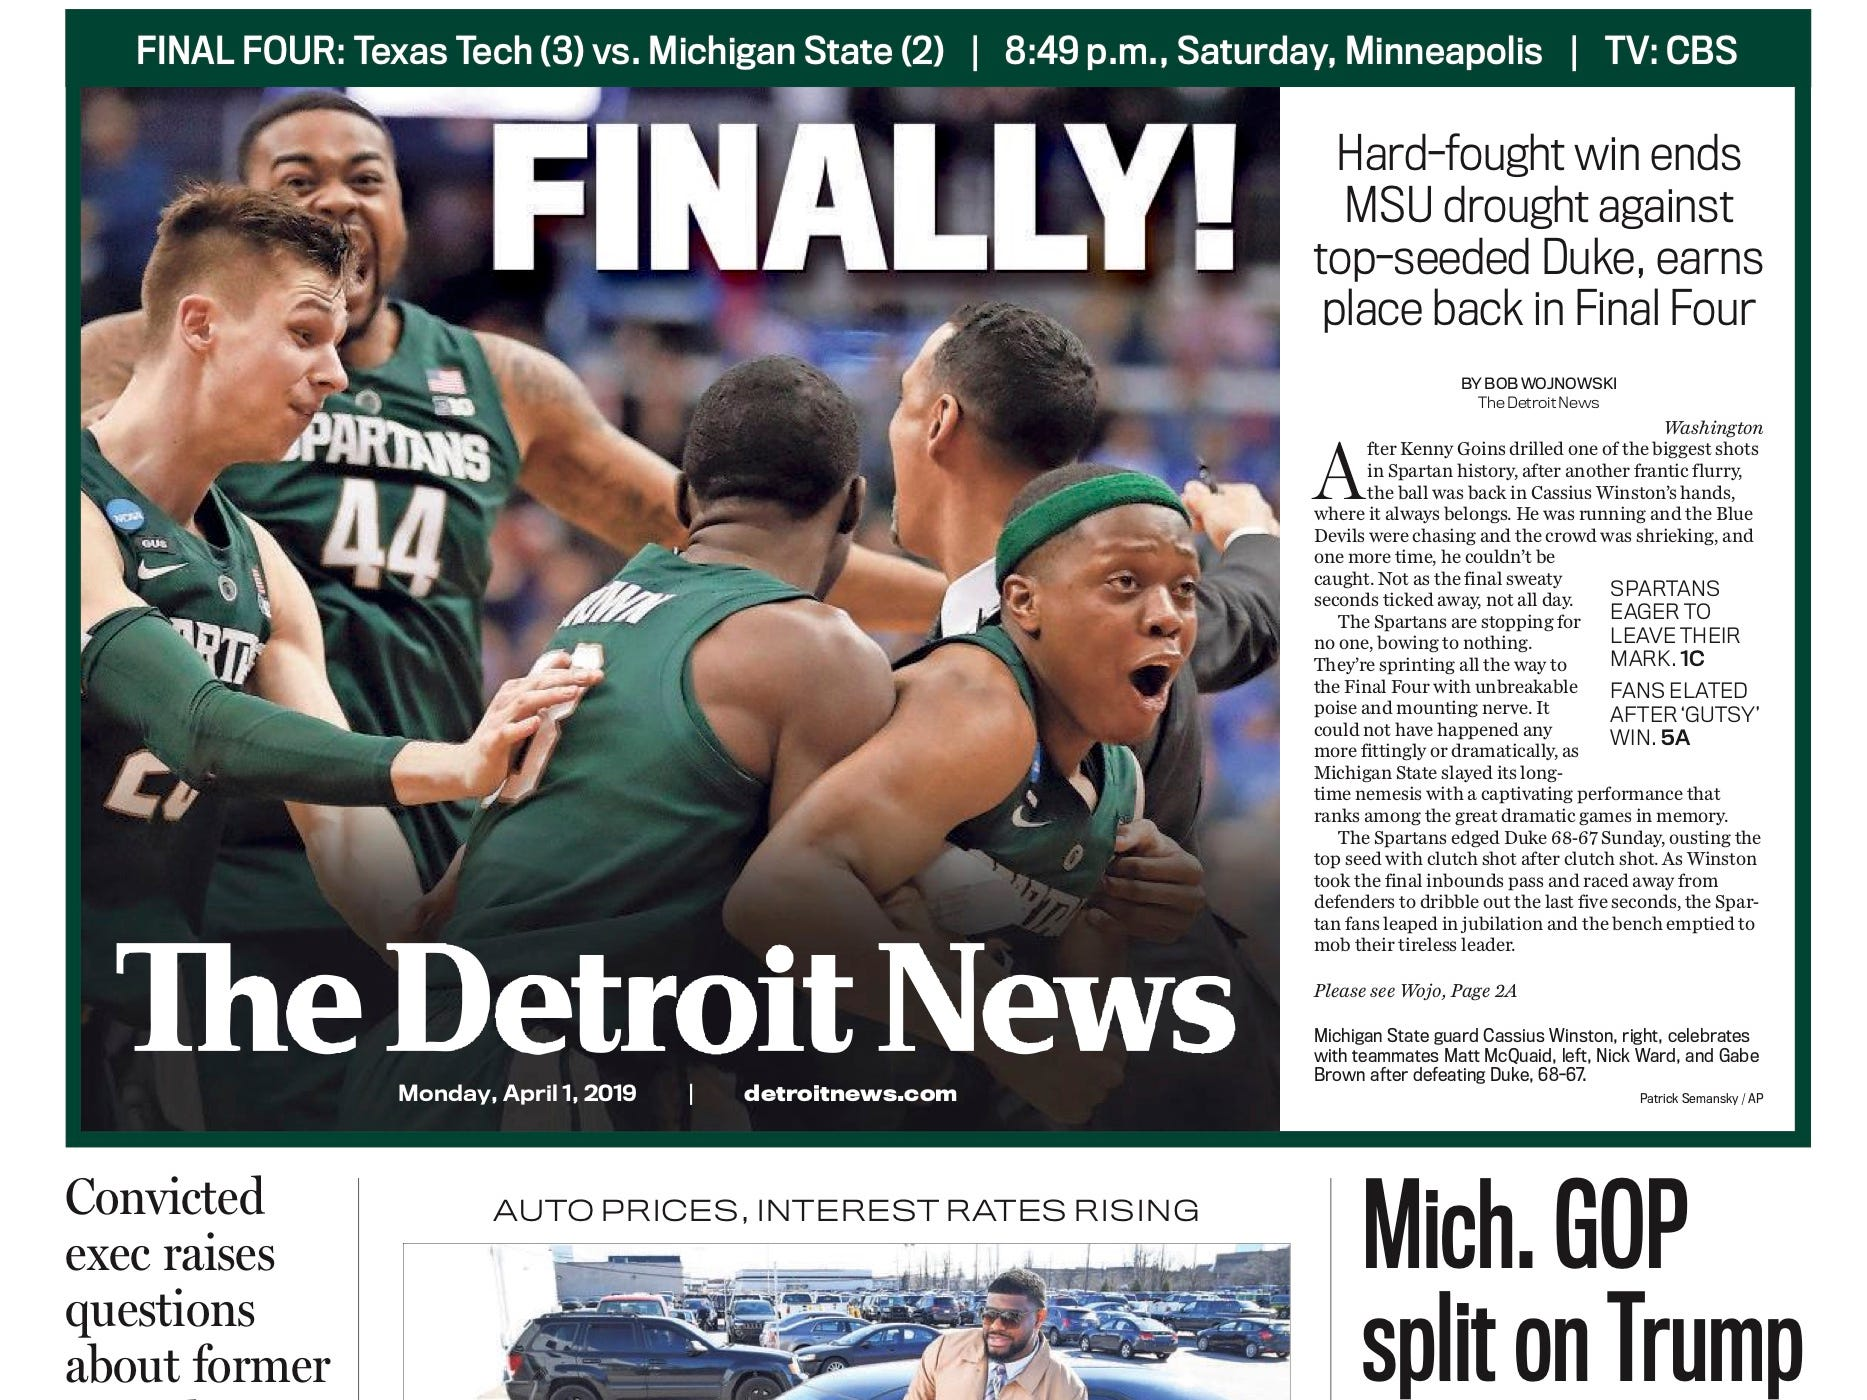 The front page of the Detroit News on April 1, 2019.